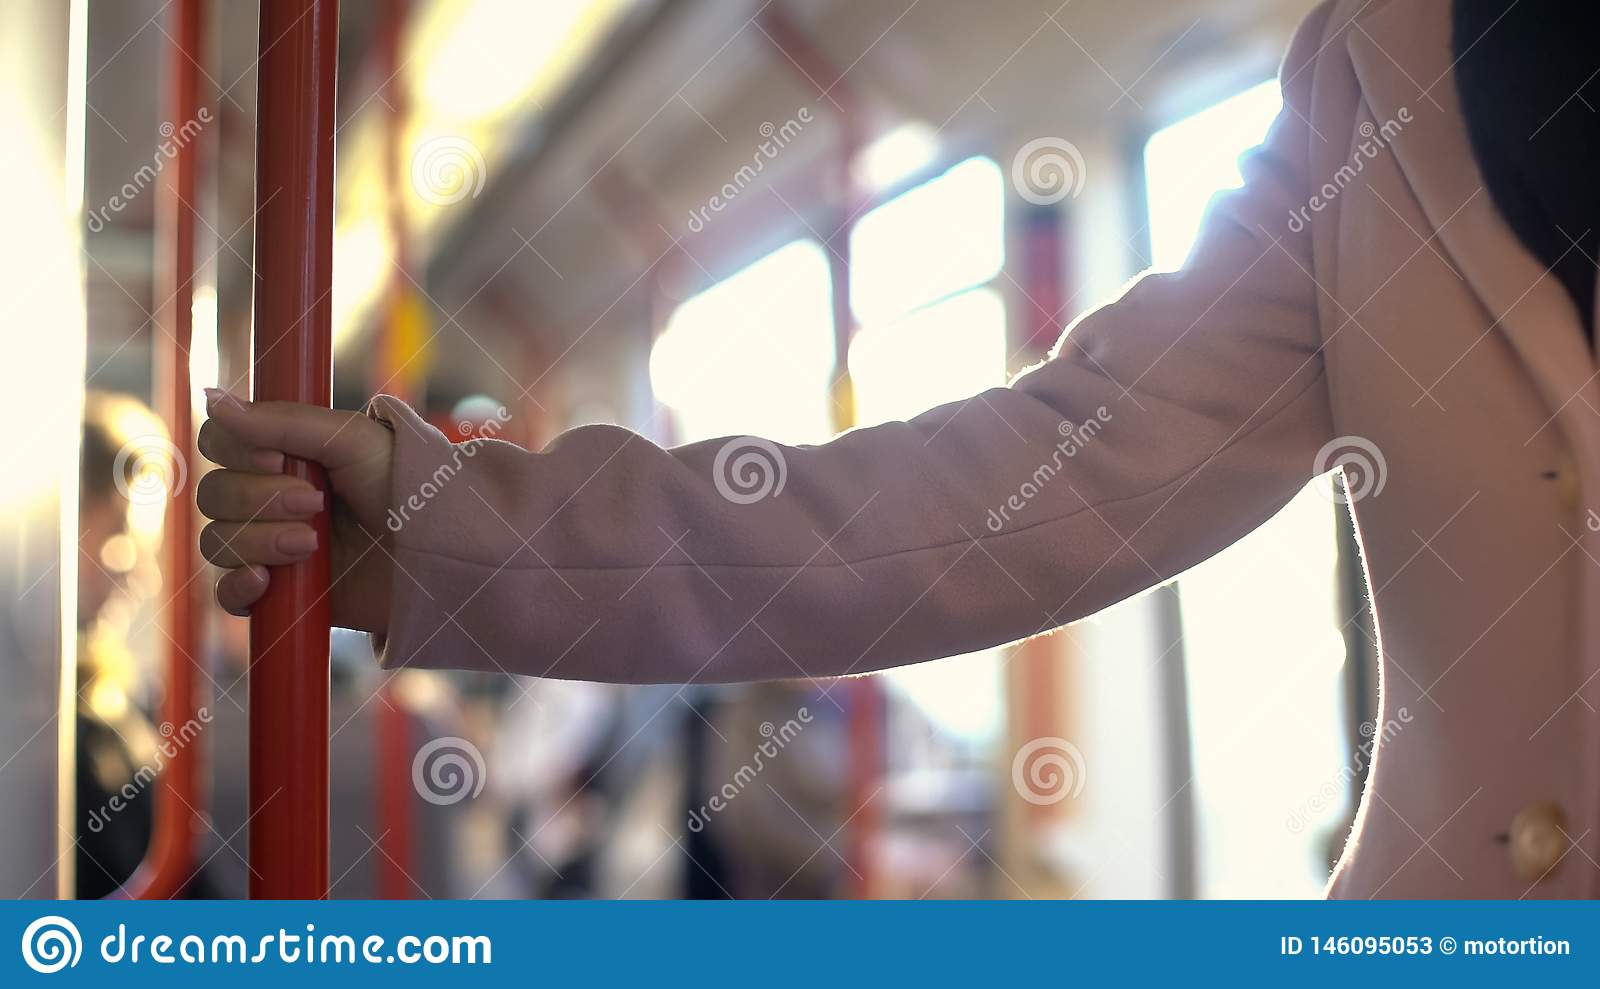 Young woman having ride in subway carriage, everyday commuting routine, railroad